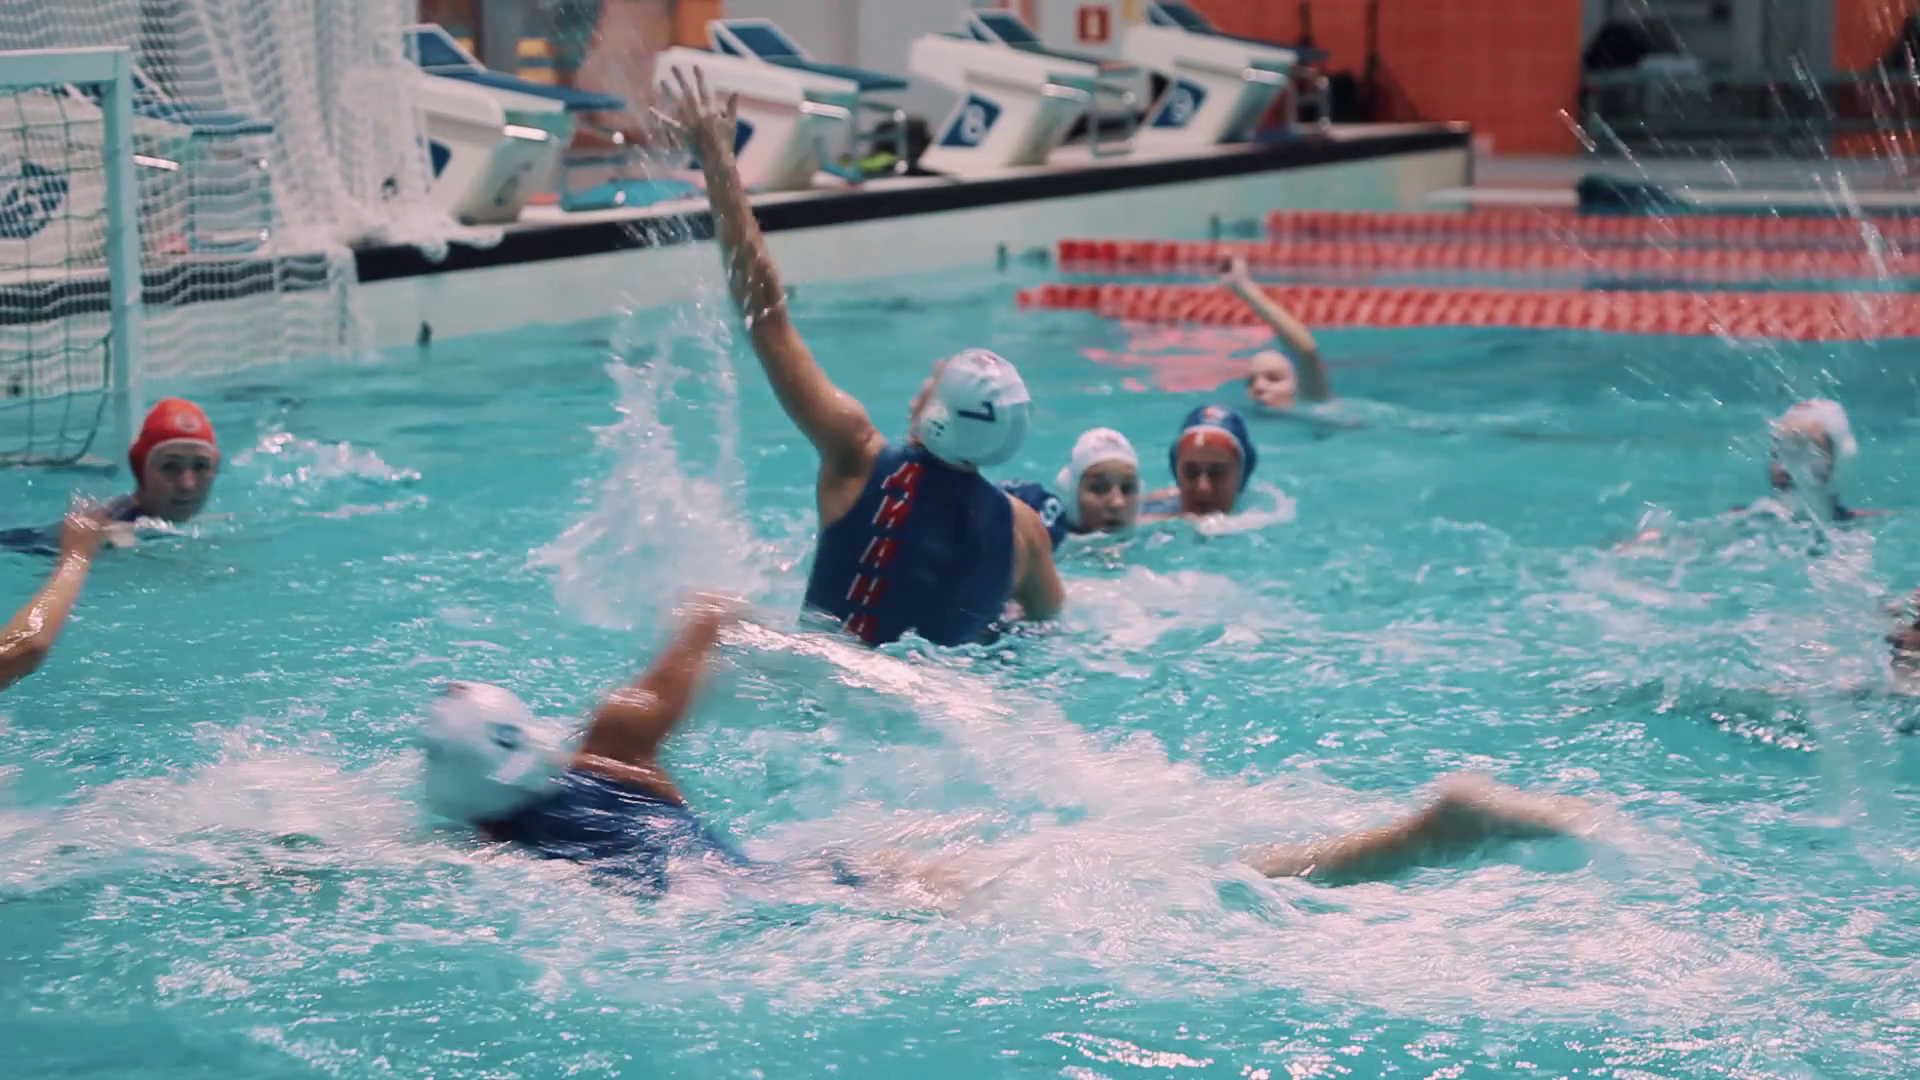 Water Polo Png Hd - Women Water Polo Players In Blue And White Caps Activly Fight For Ball At Gates During Match In Pool With Lot Of Splashes Stock Video Footage   Videoblocks, Transparent background PNG HD thumbnail